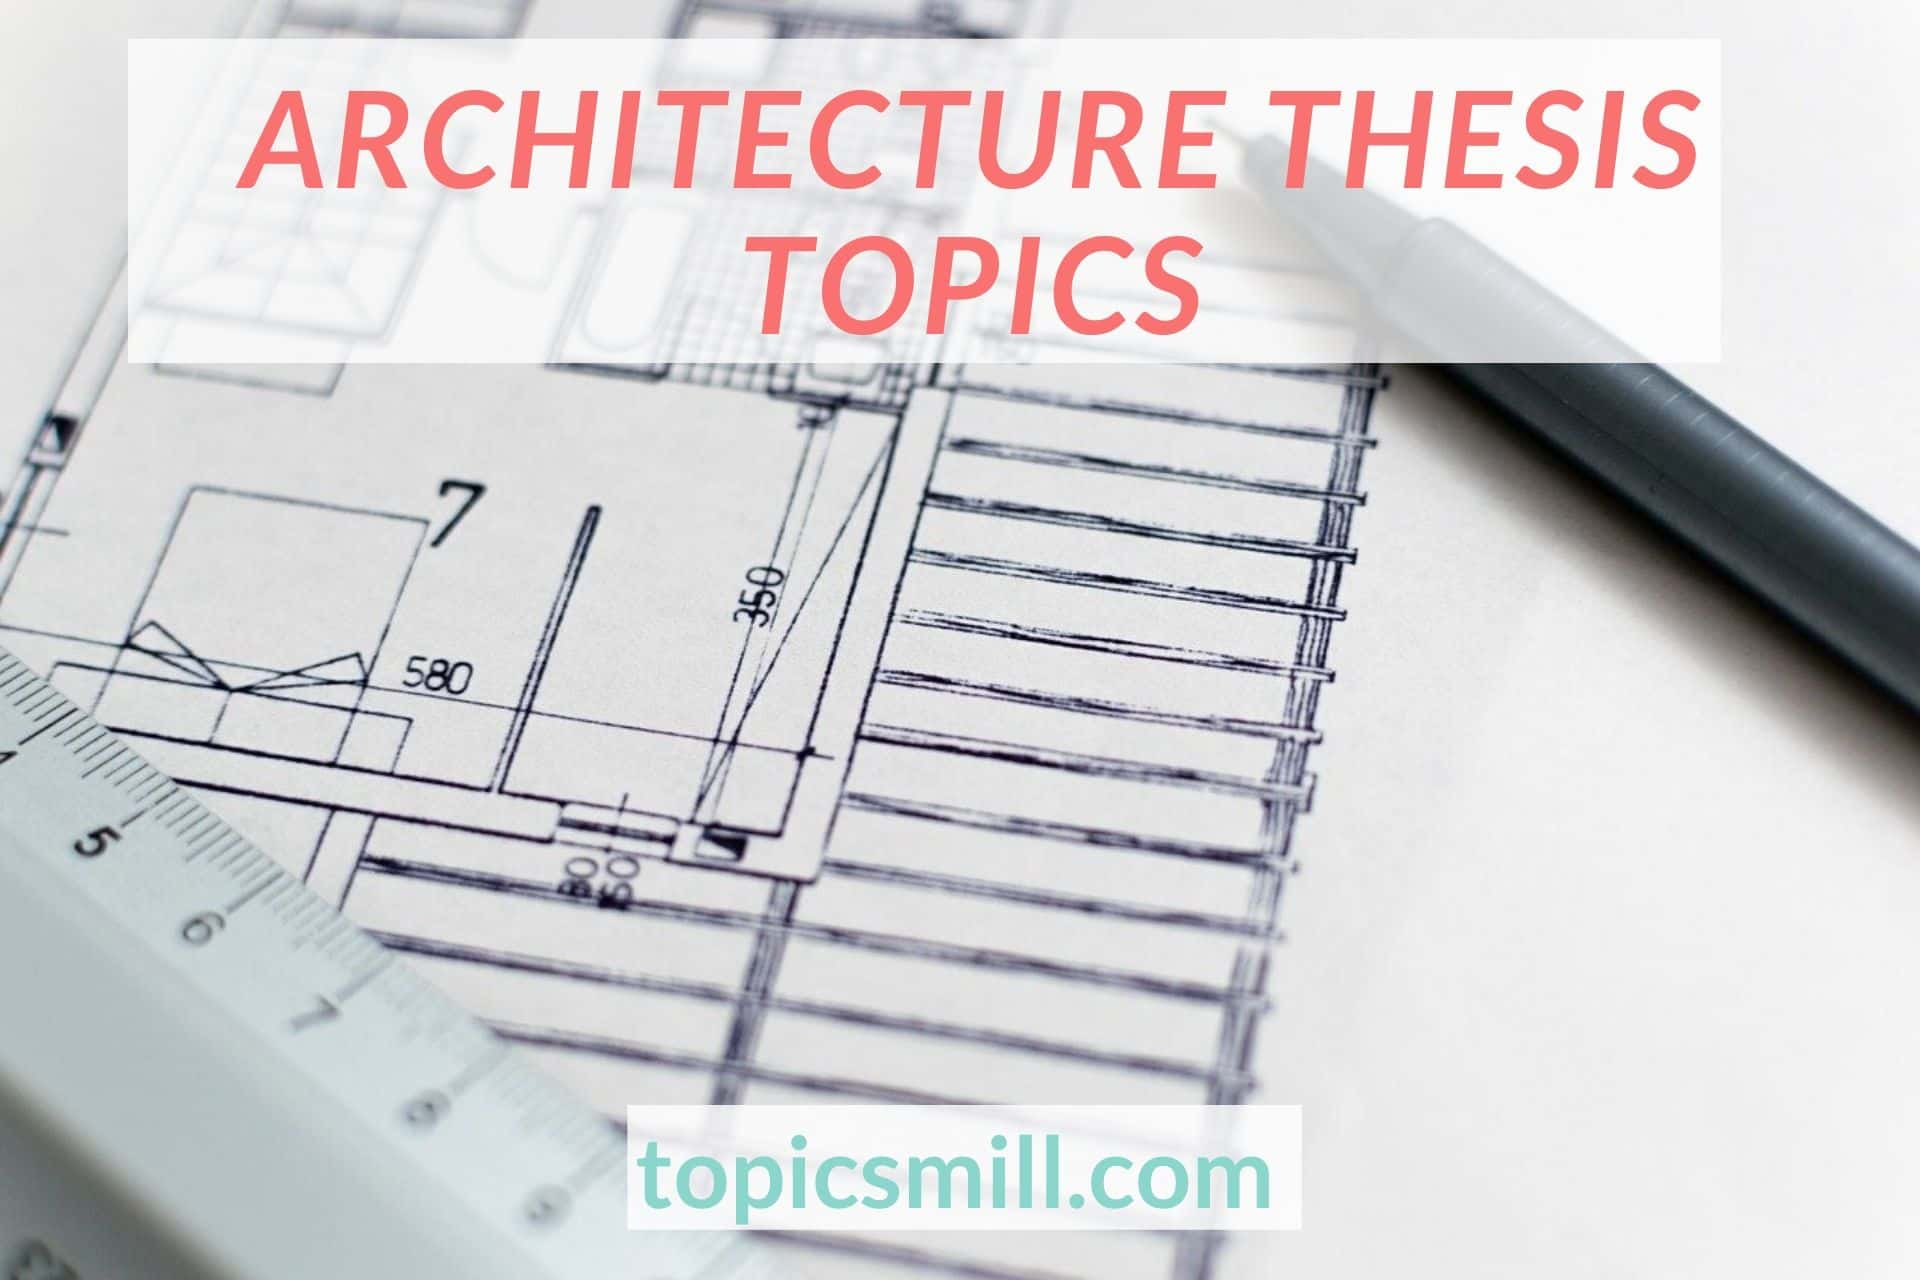 The Best Ideas Of Architecture Thesis Topics In A List - 2021